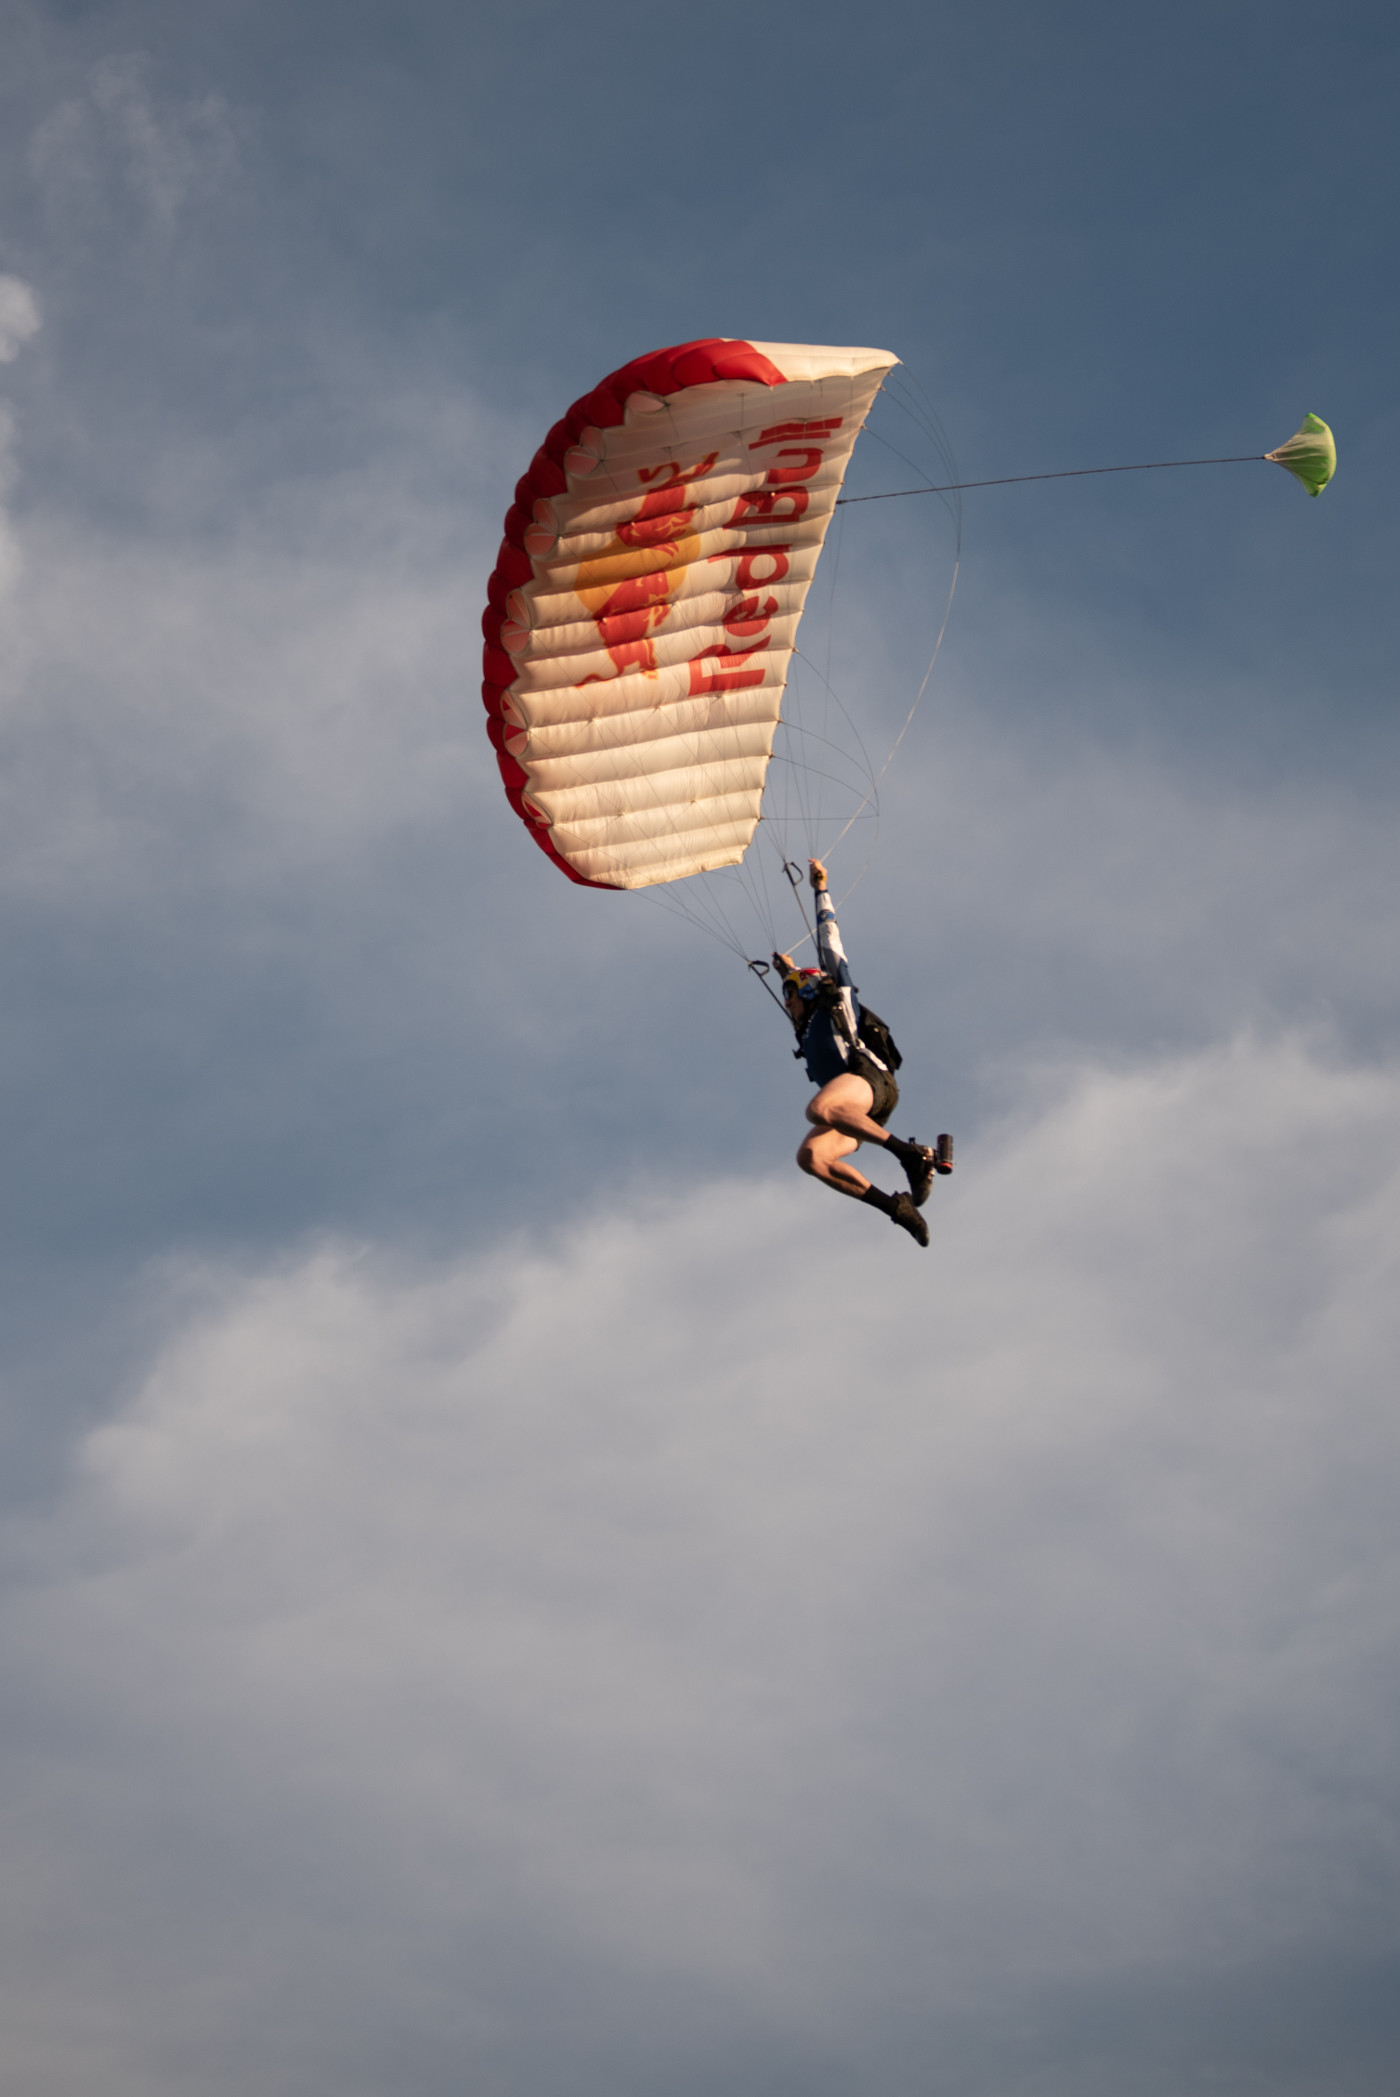 images/4xFar 2020/Parachuting in a daily and nightly occurrence